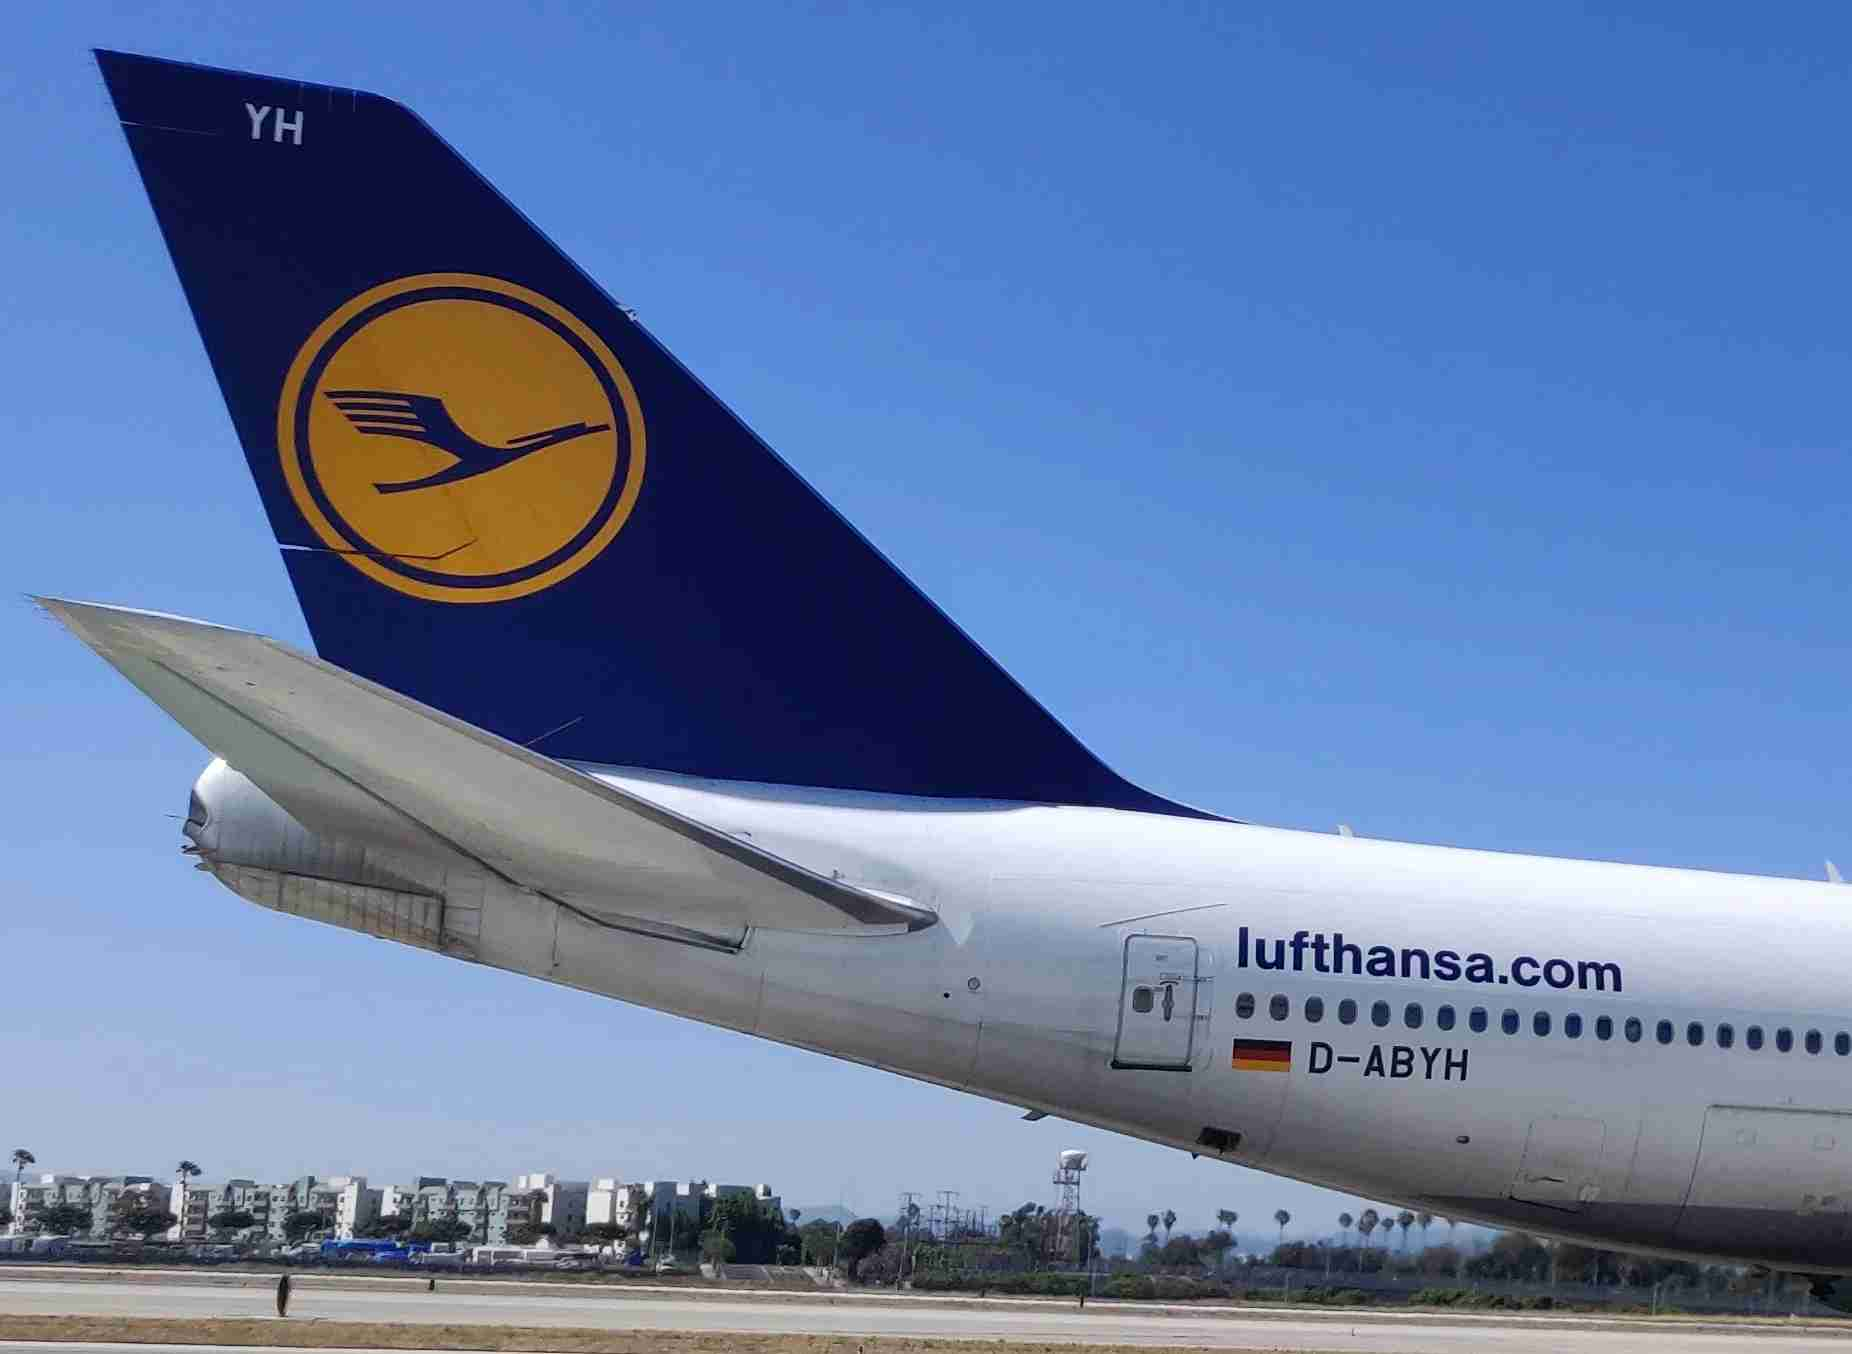 The outflow valve on this Lufthansa 747 can be seen just below the German flag